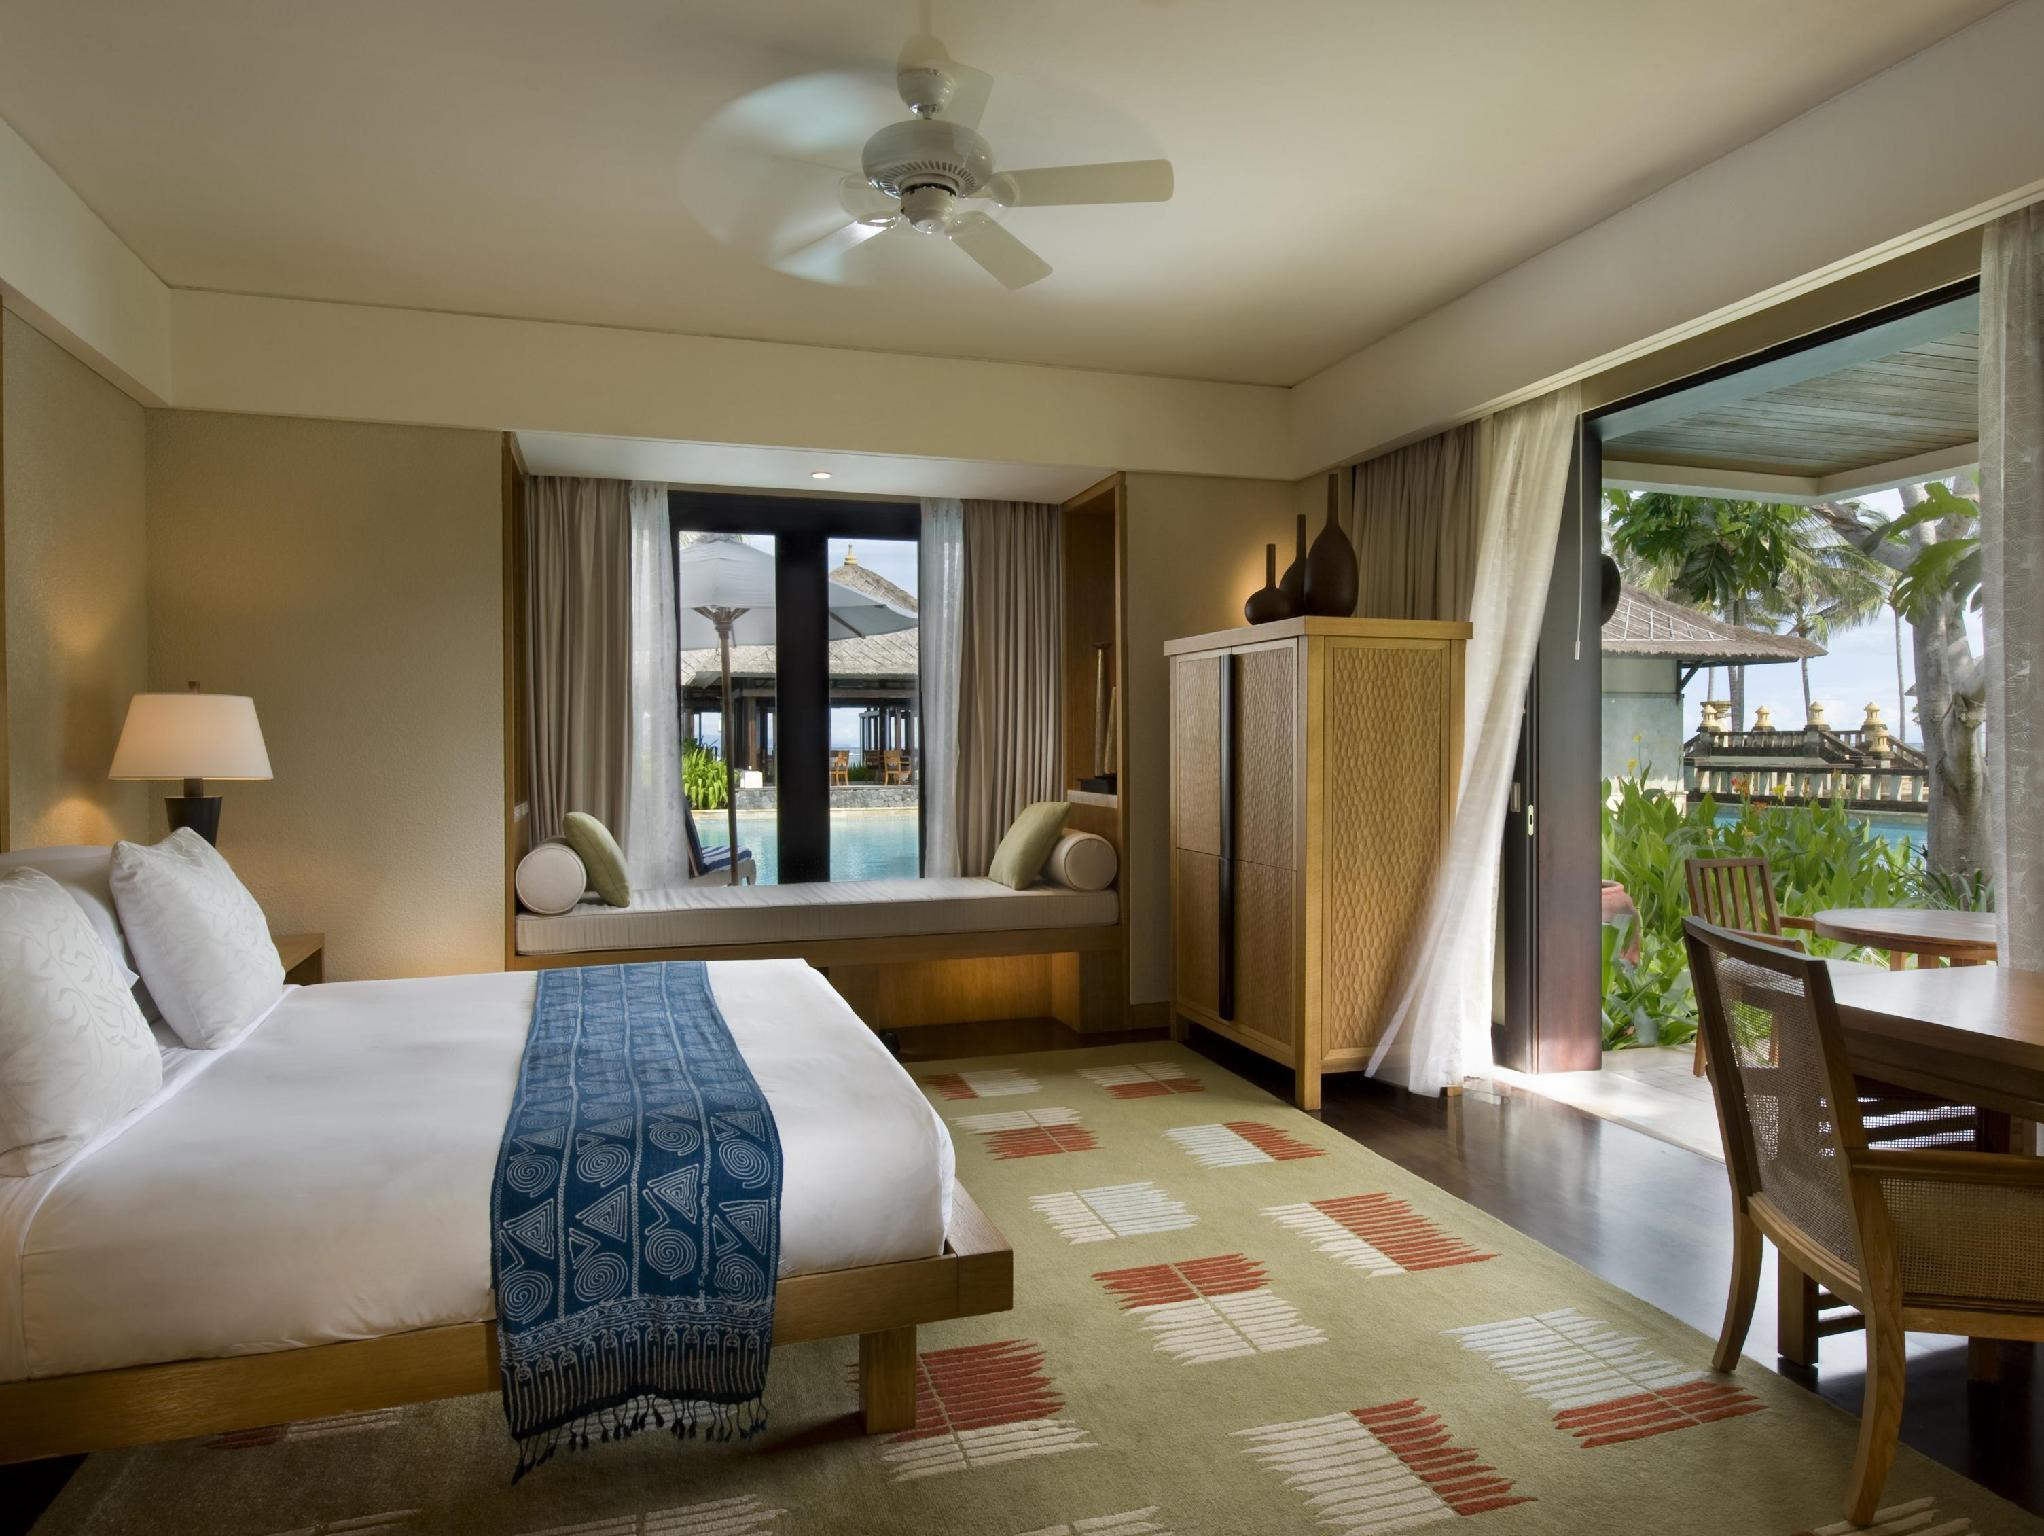 Conrad Bali In Indonesia Room Deals Photos Reviews Voucher Hotel Ayodya Resort Deluxe Bed An Breakfast Suite With King